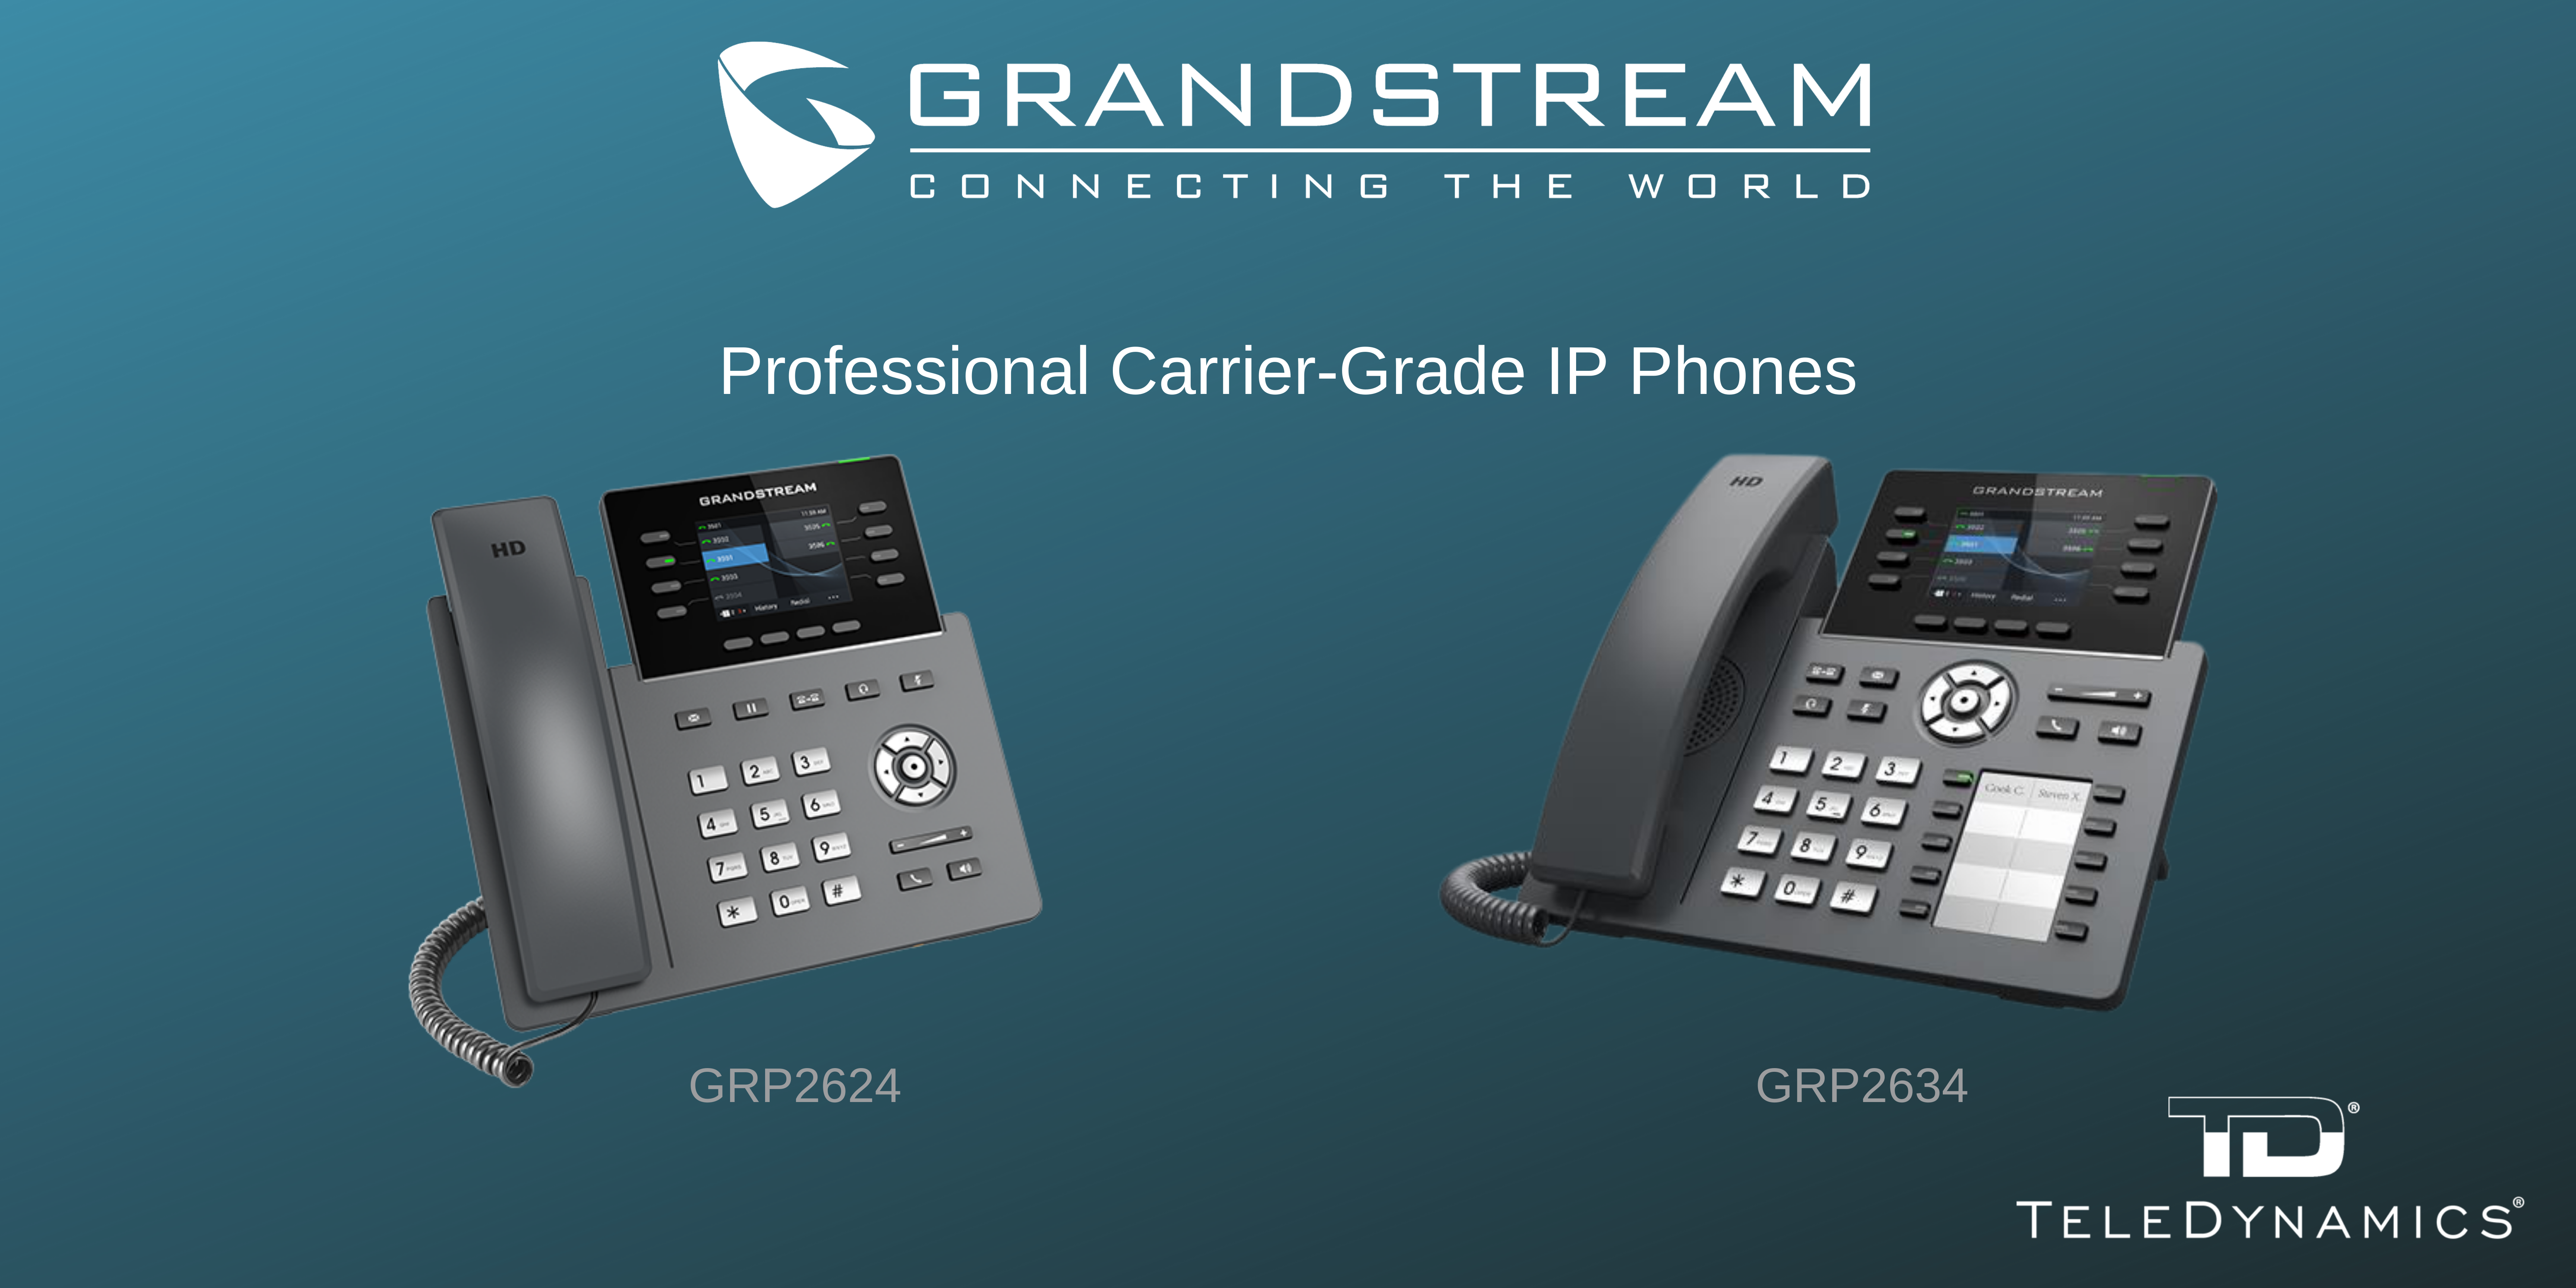 Grandstream GRP2624 & GRP2634 carrier-grade IP phones - distributed by TeleDynamics